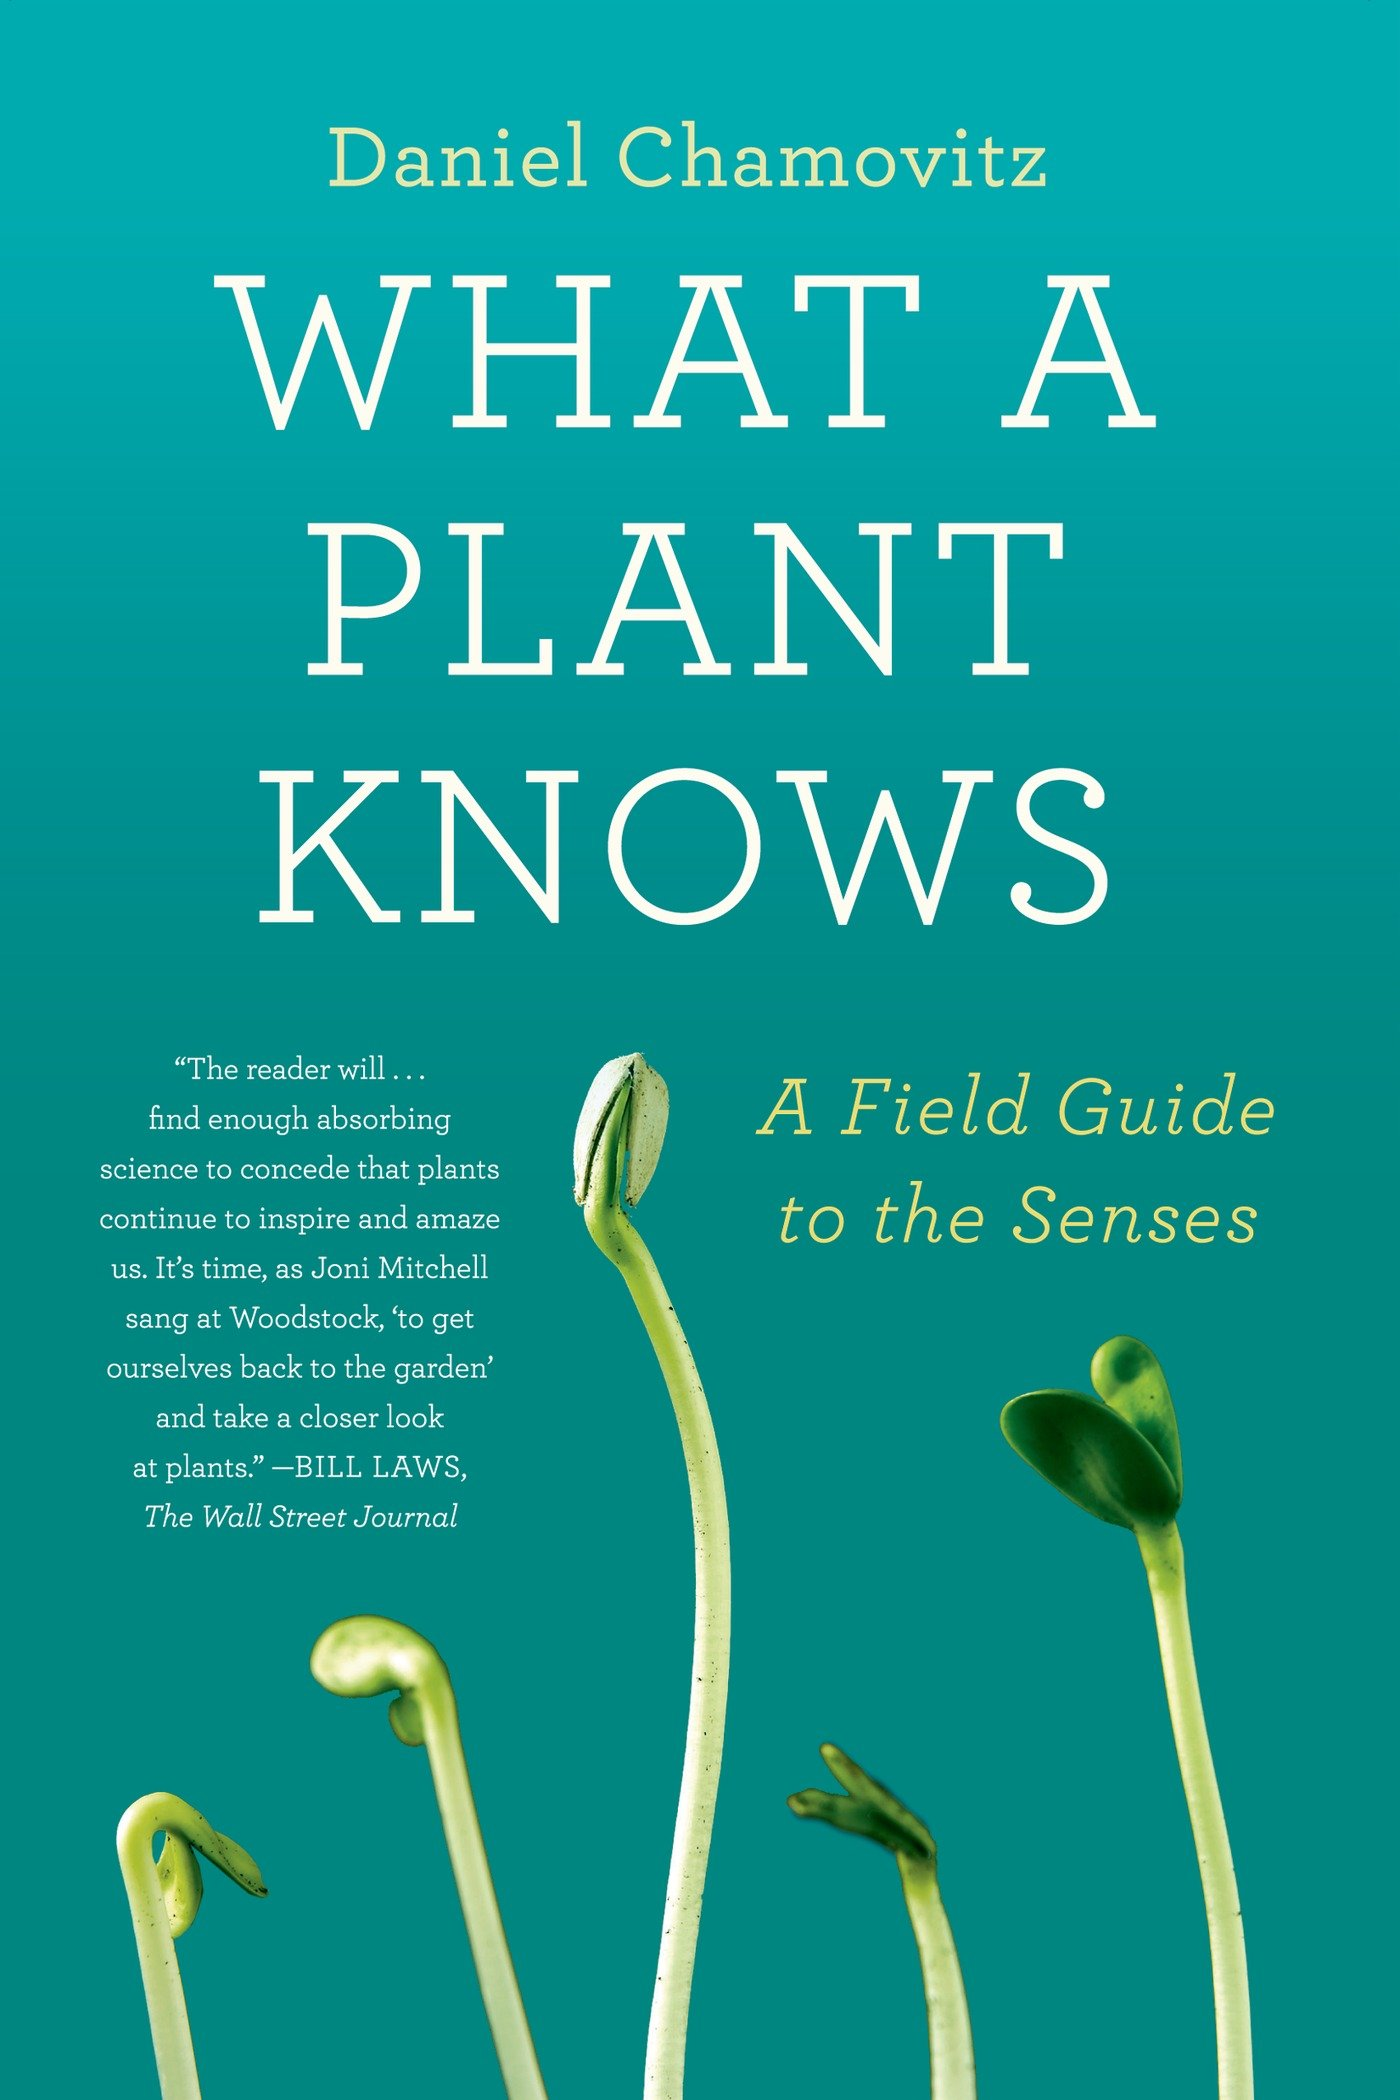 amazon what a plant knows a field guide to the senses daniel